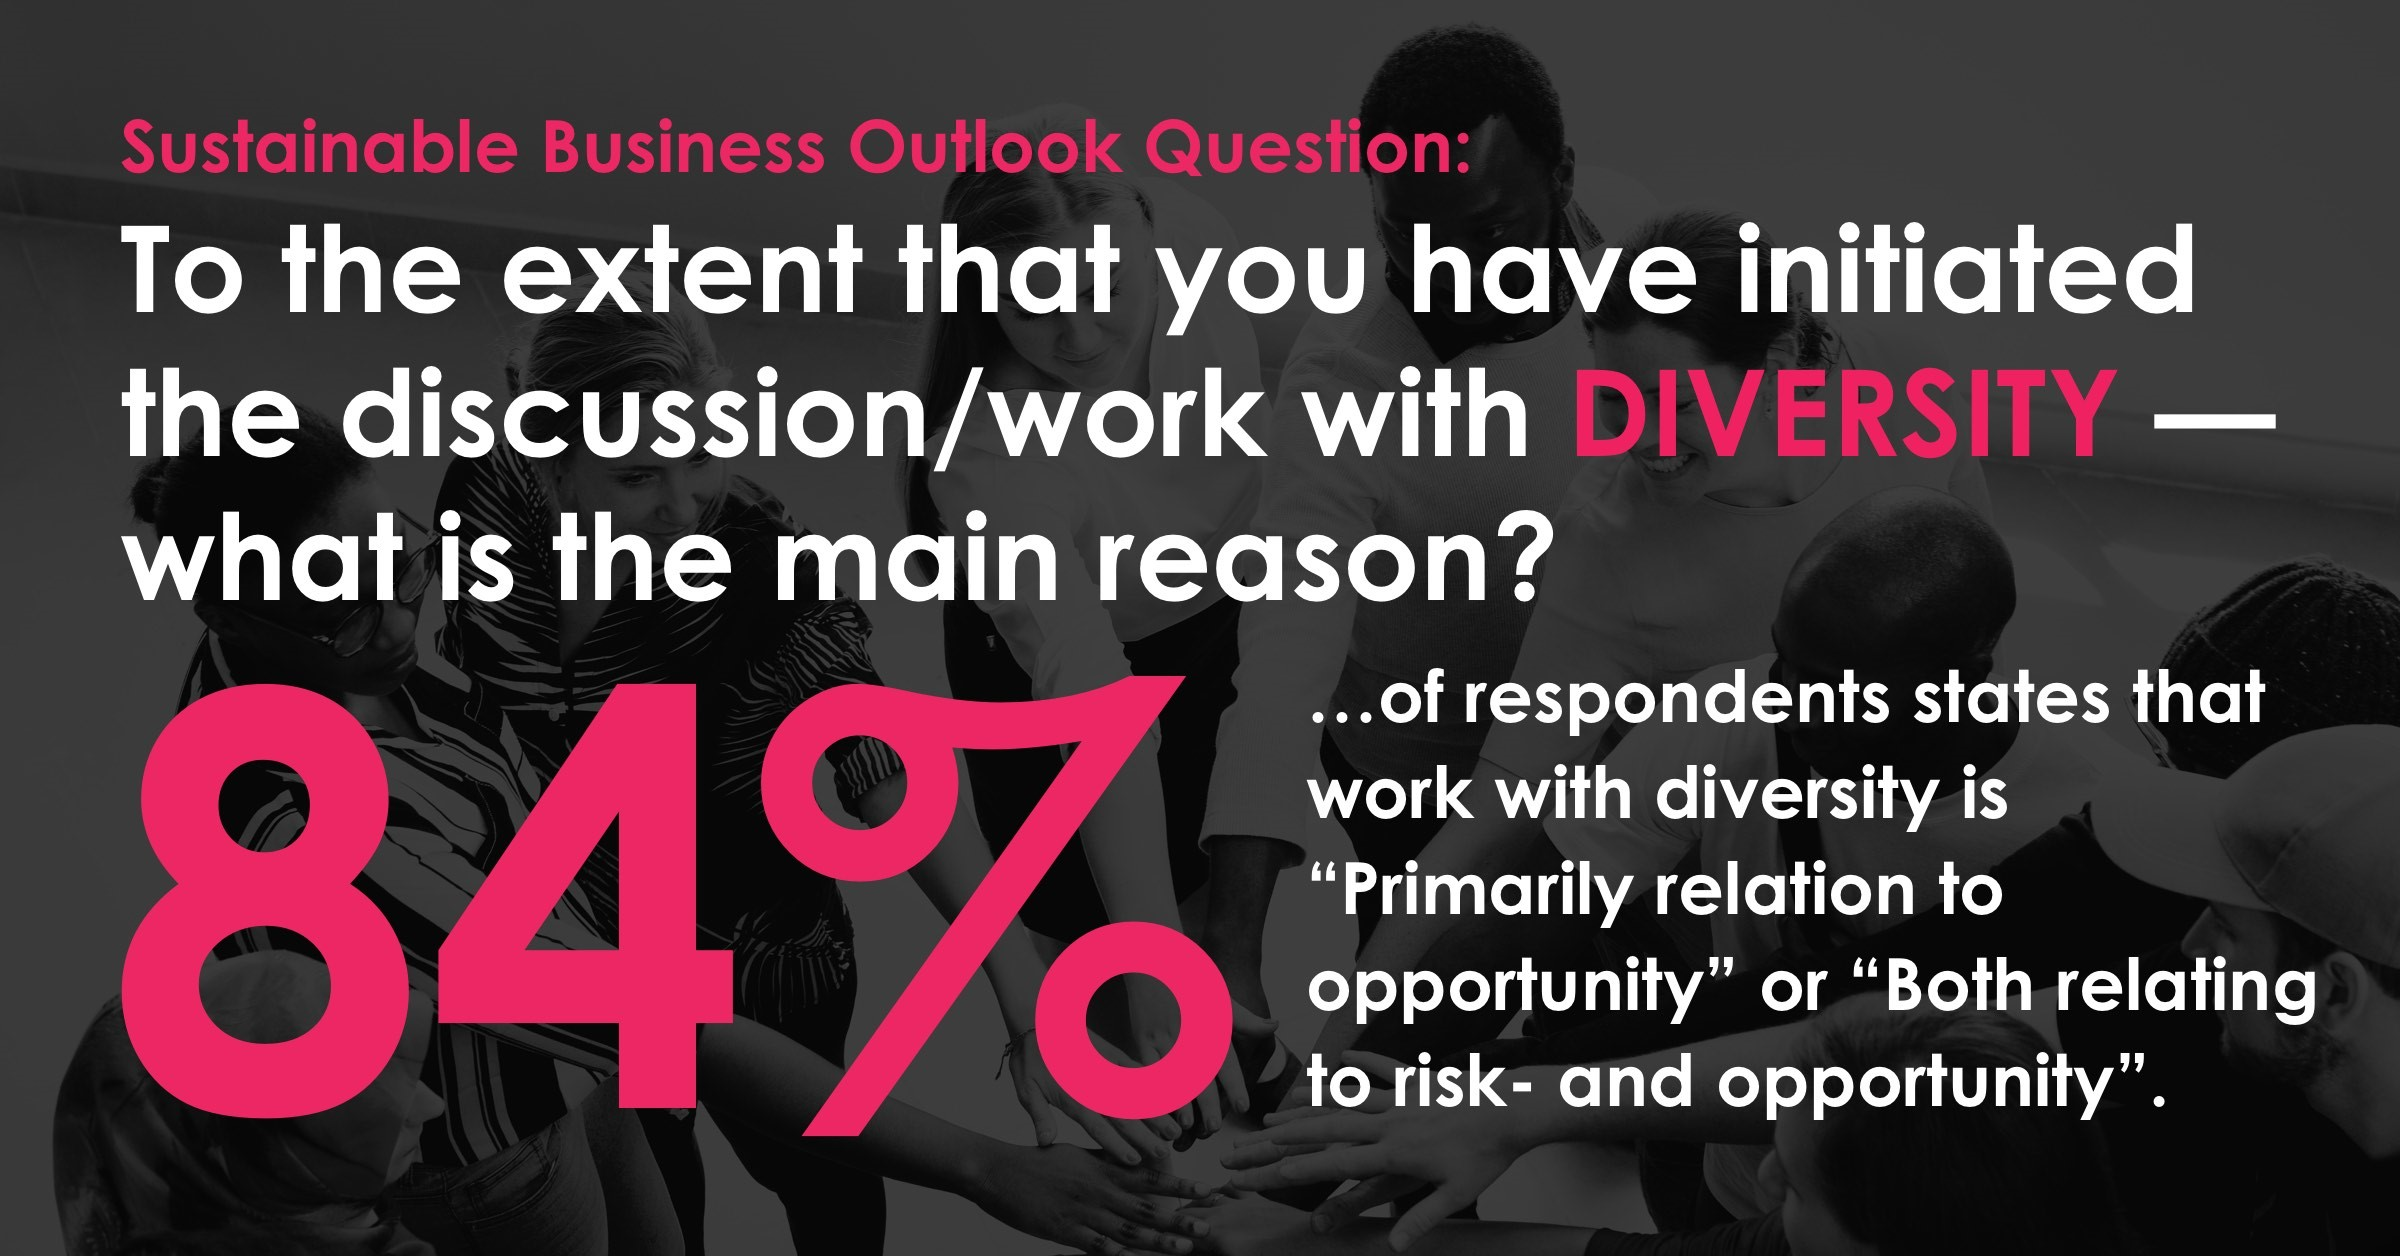 84% see opportunity in diversity